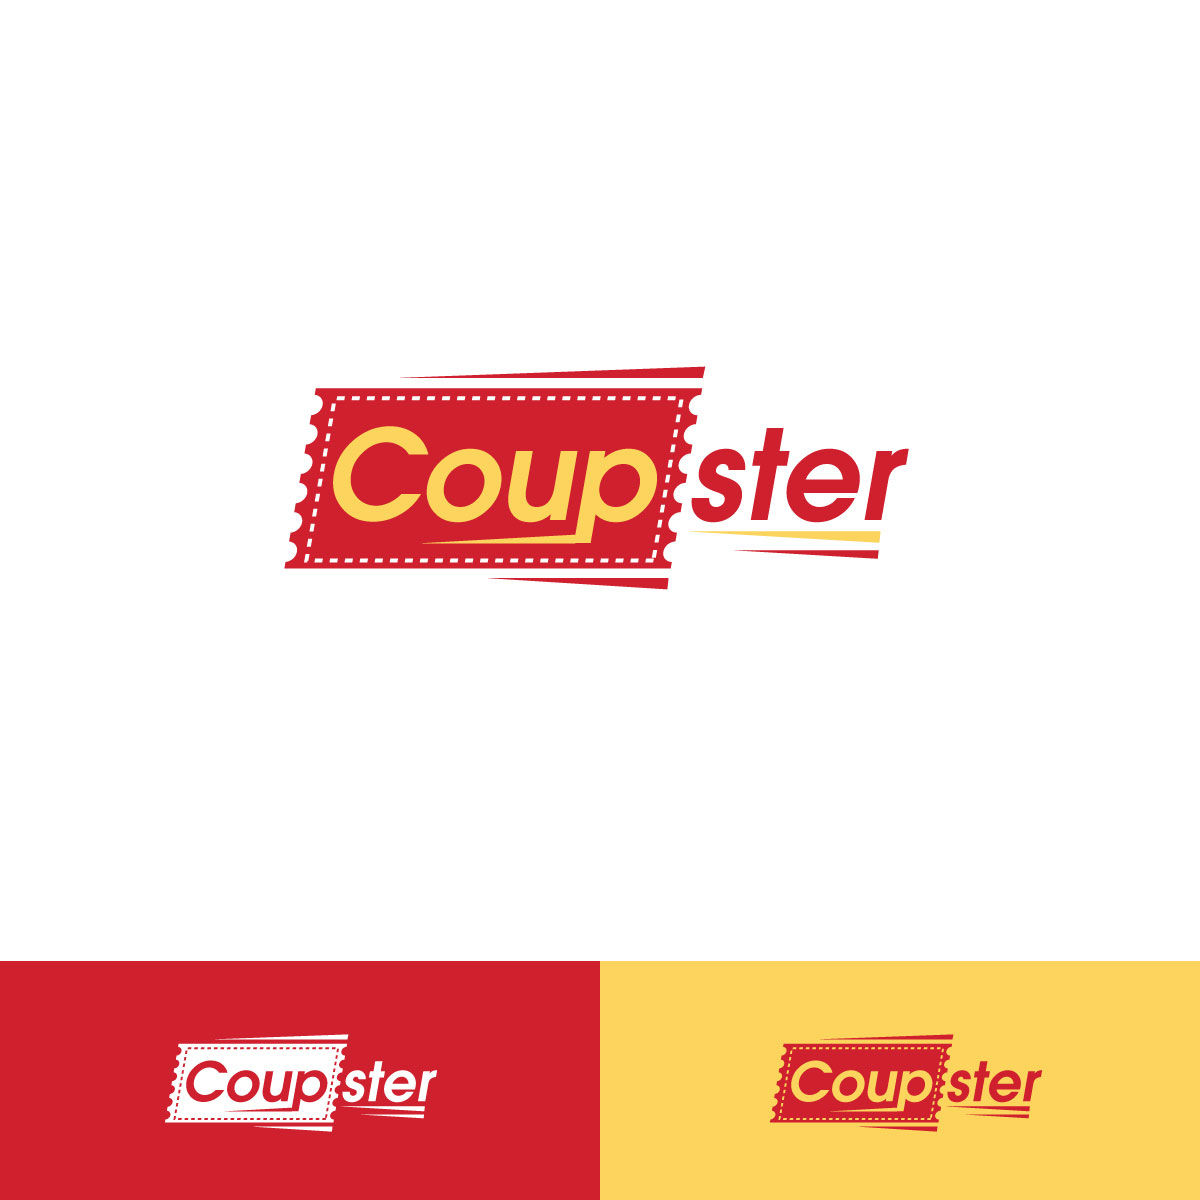 Professional Bold Coupon Logo Design For Coupster By R R Design